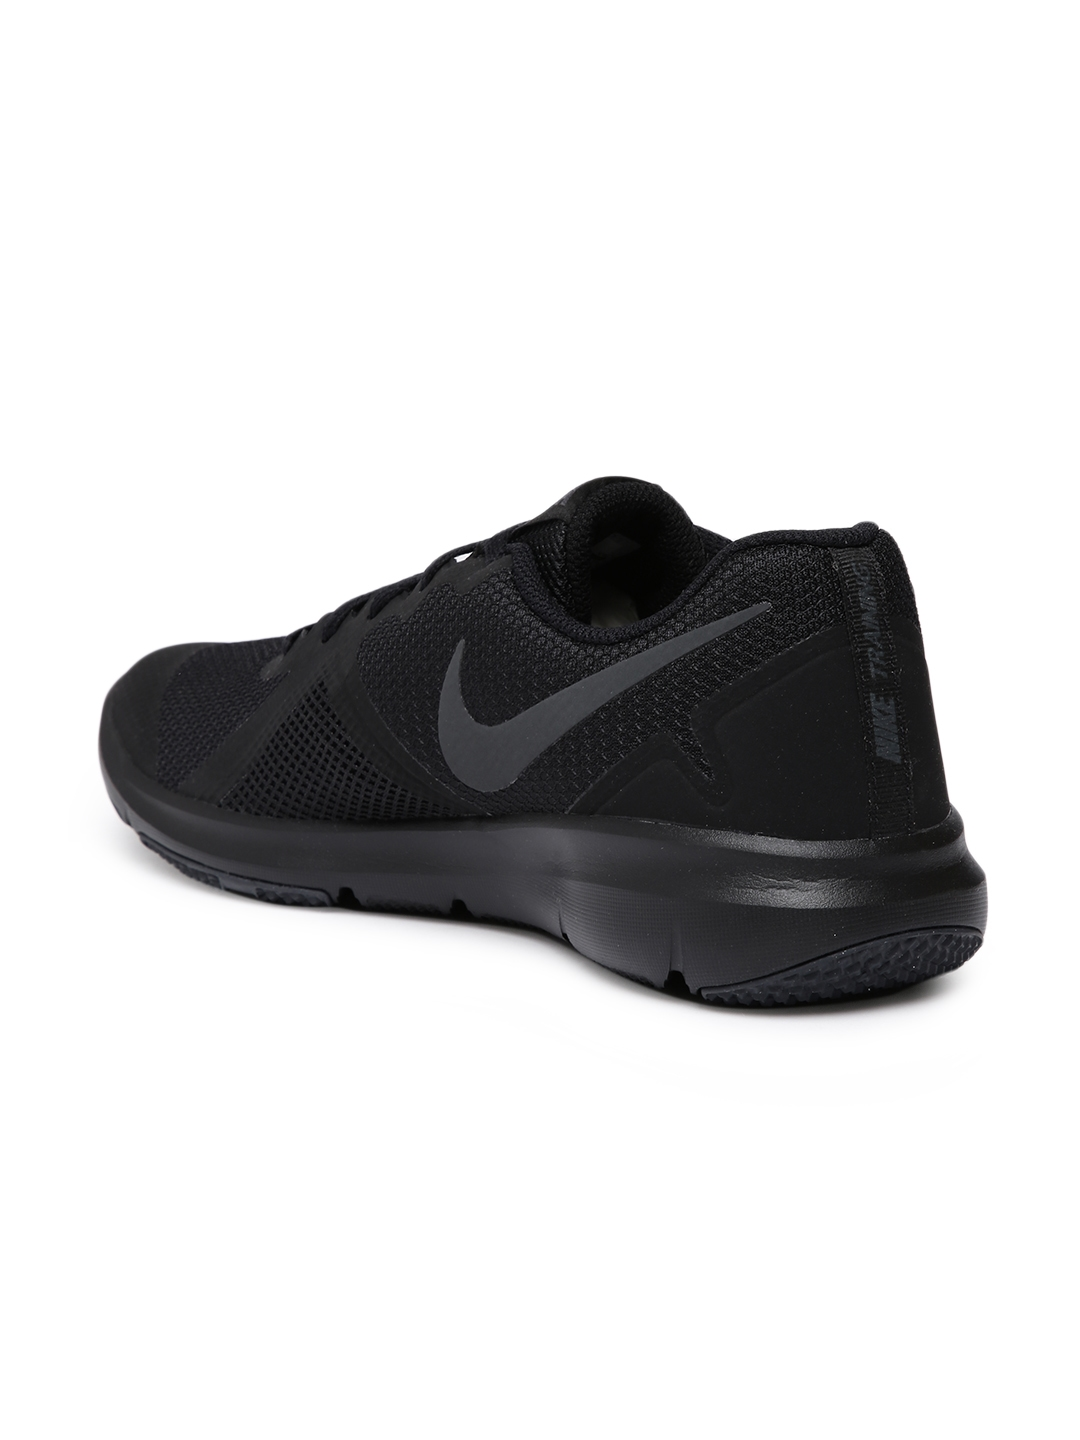 2881f9bd2337f Buy Nike Men Black FLEX CONTROL II Training Shoes - Sports Shoes for ...